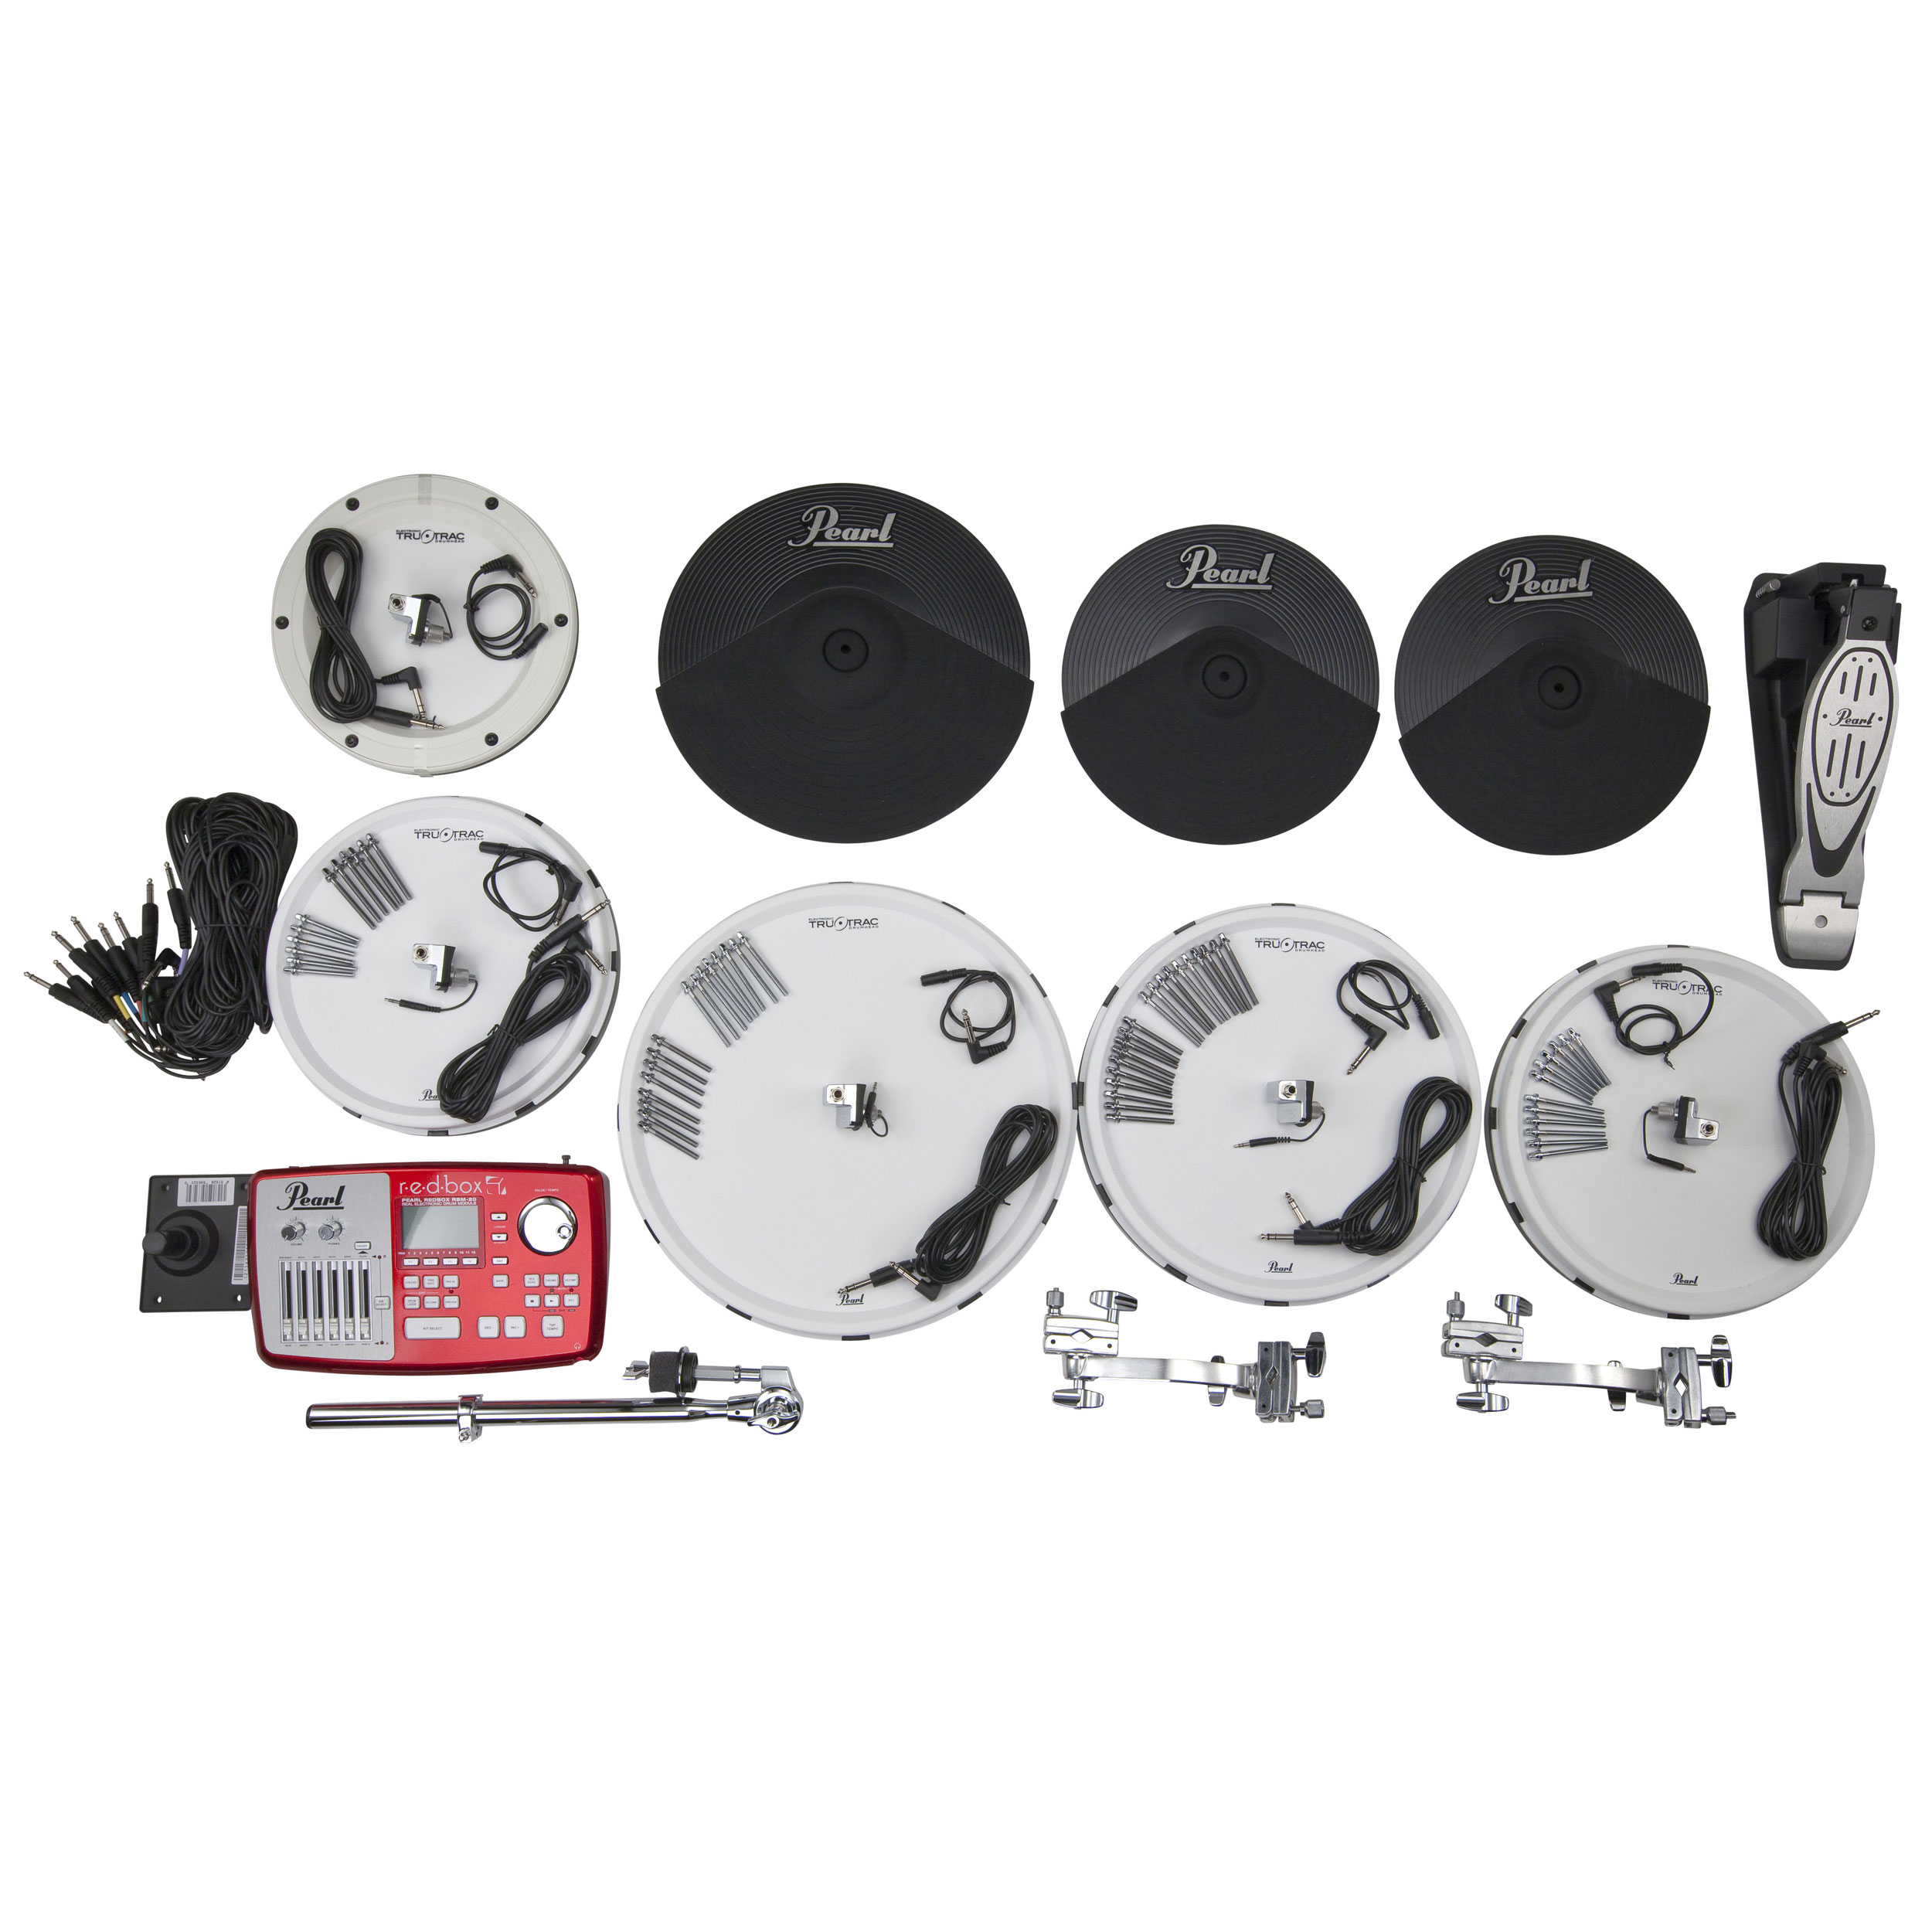 "Pearl EPAD-25 Electronic Drum Set with 12-13-14-16"" Tru-Trac Heads, Bass Pad, Module & Plastic Cymbals"